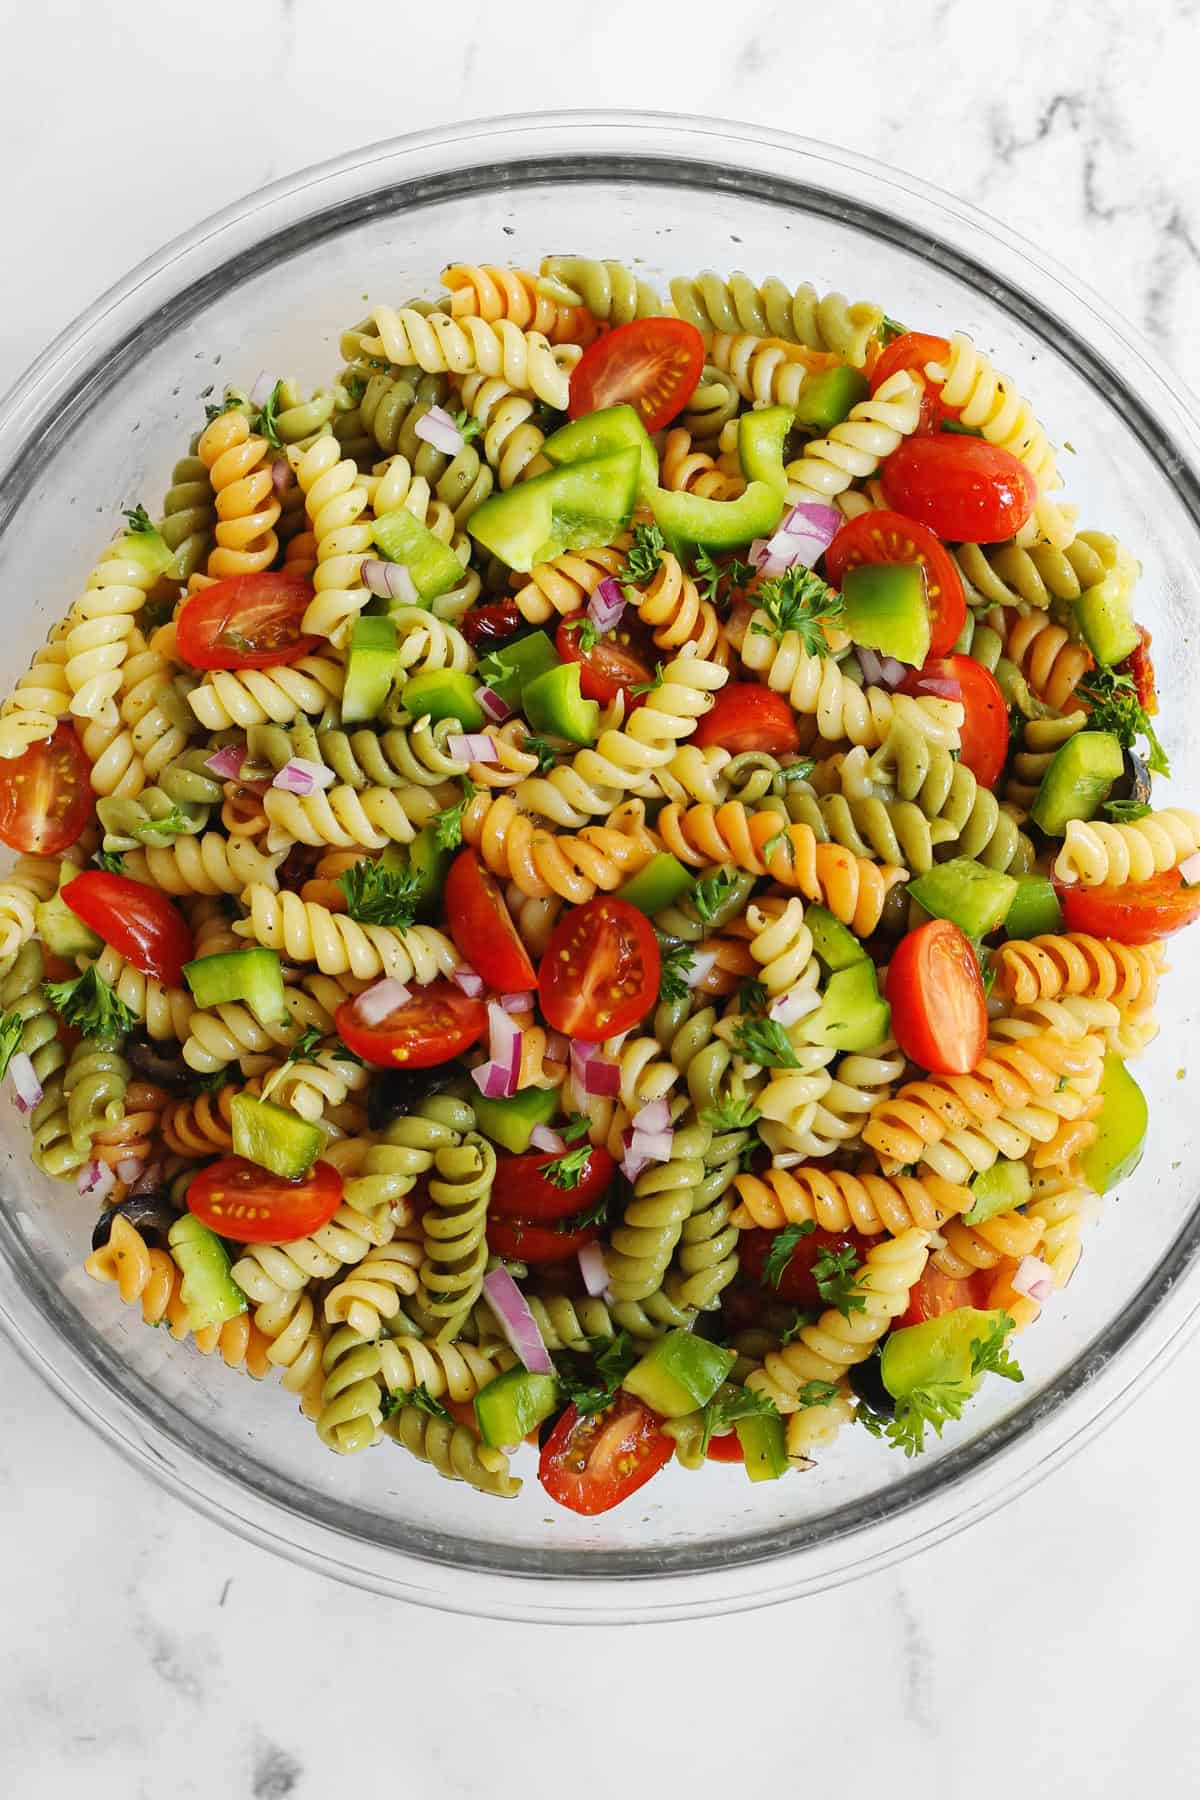 Vegetarian pasta salad in a large glass bowl